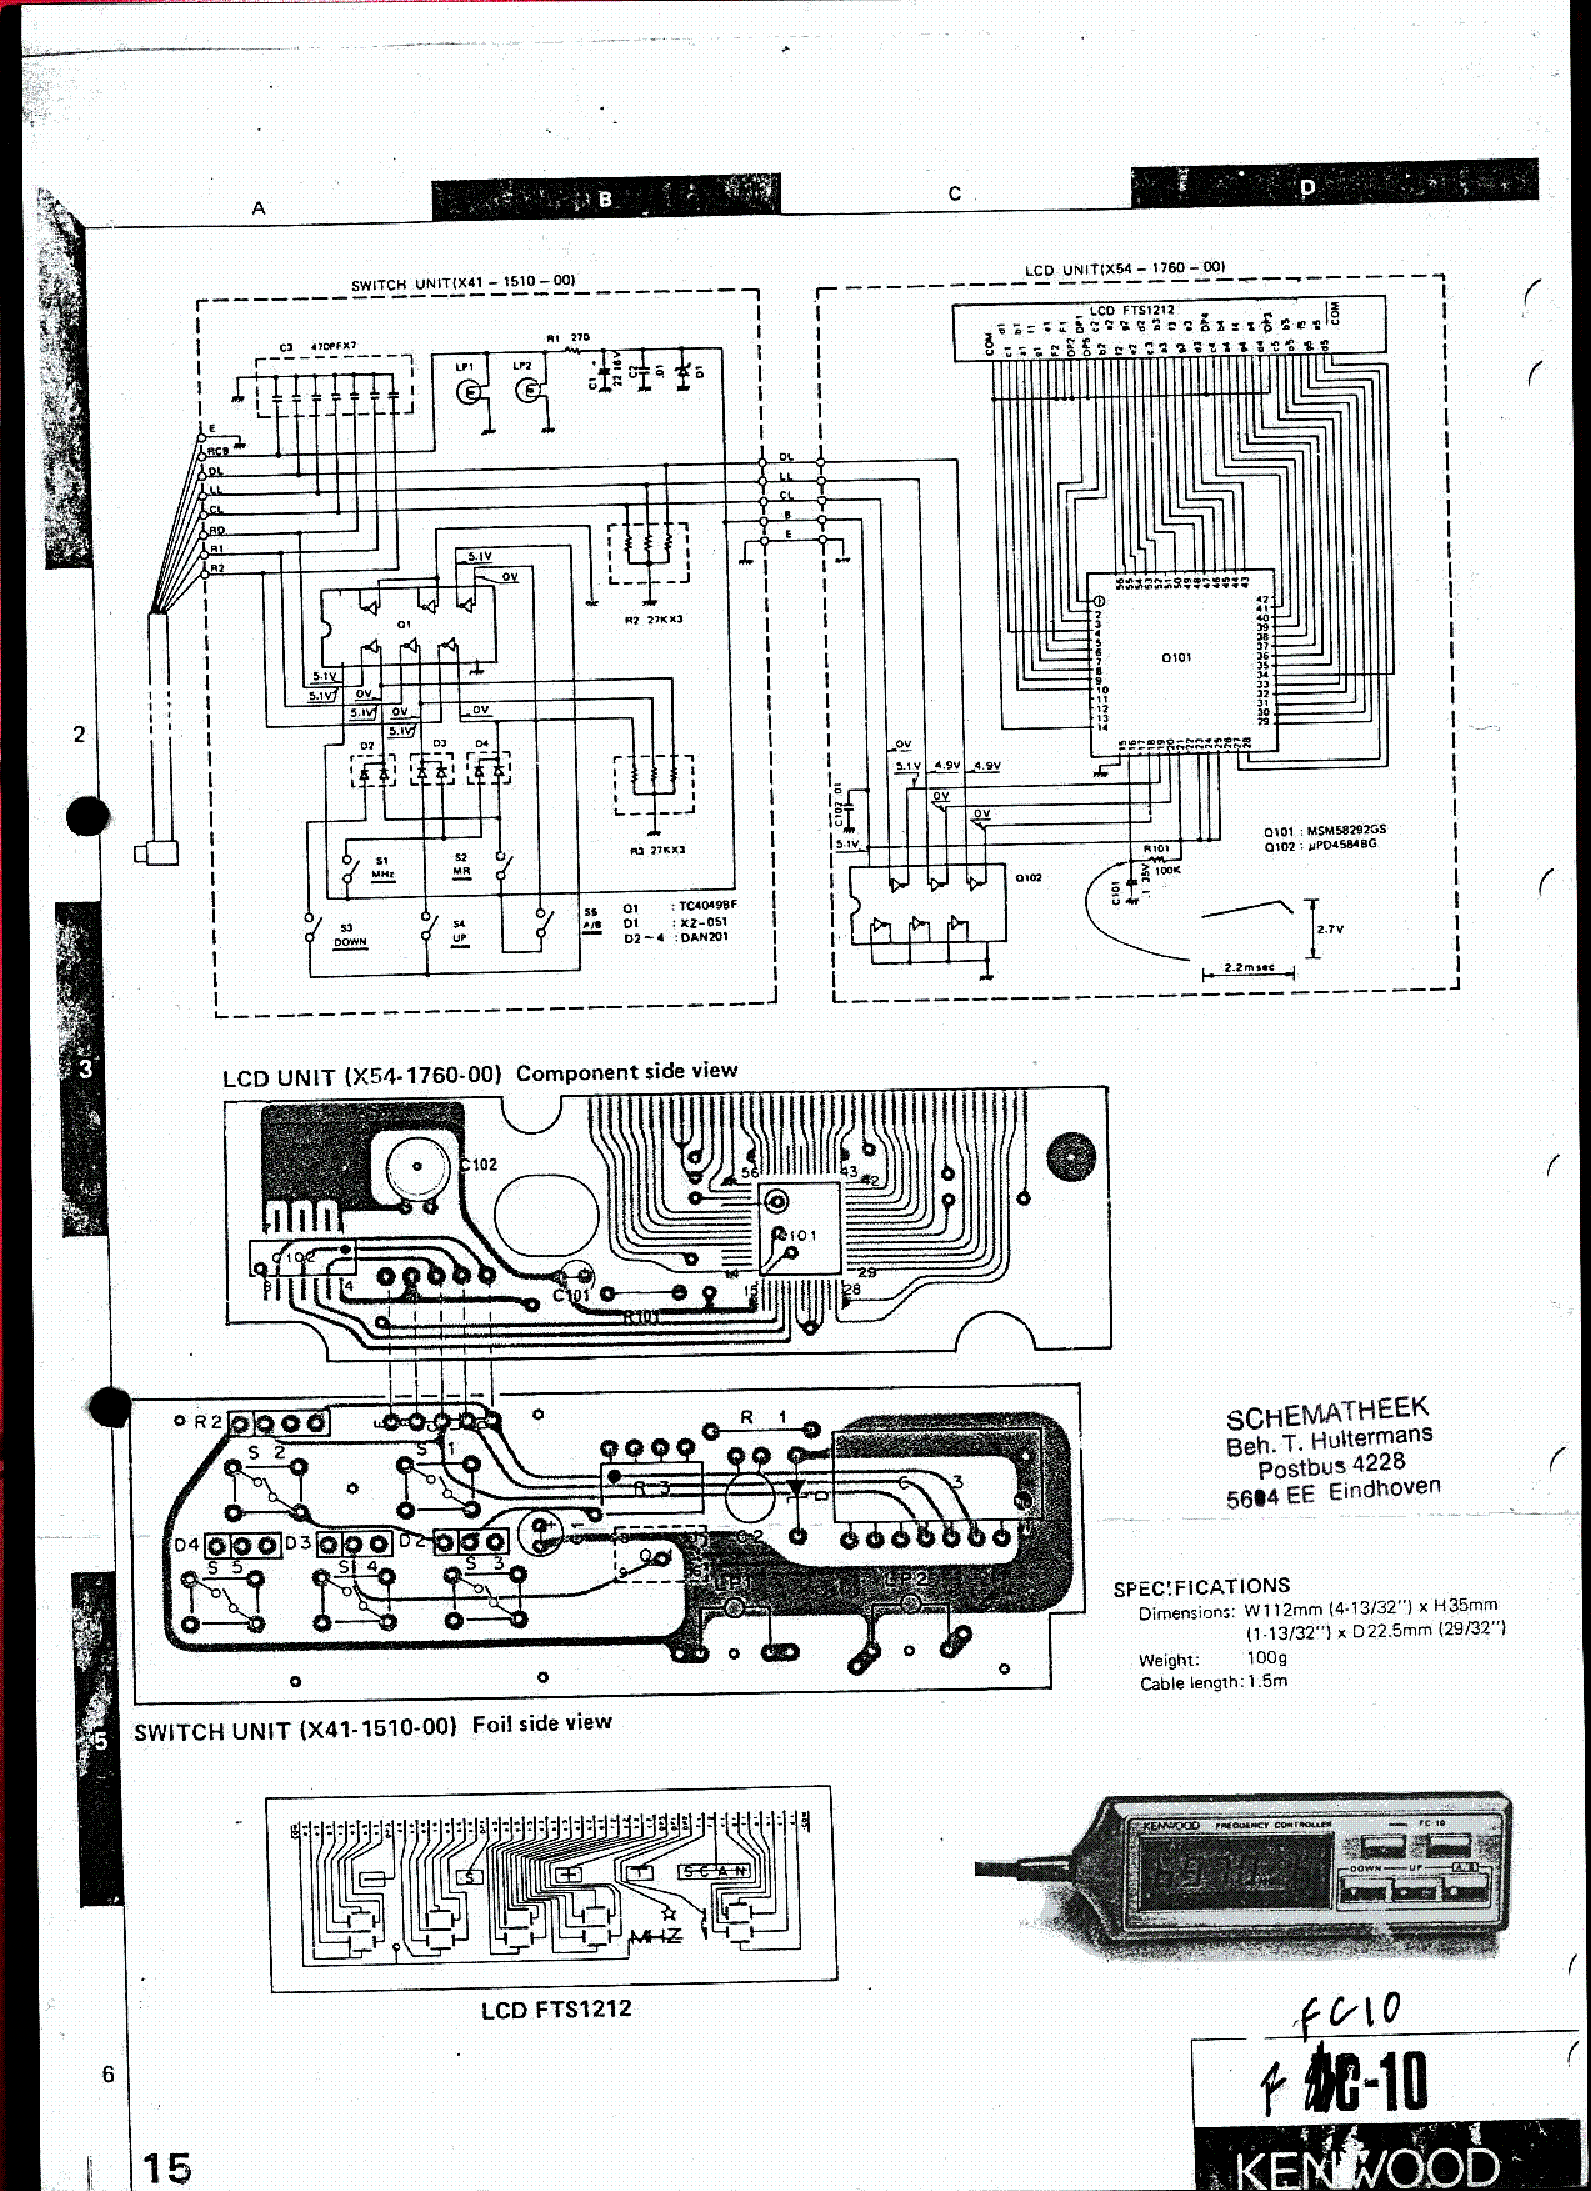 KENWOOD TRIO TS-530SP SM Service Manual download